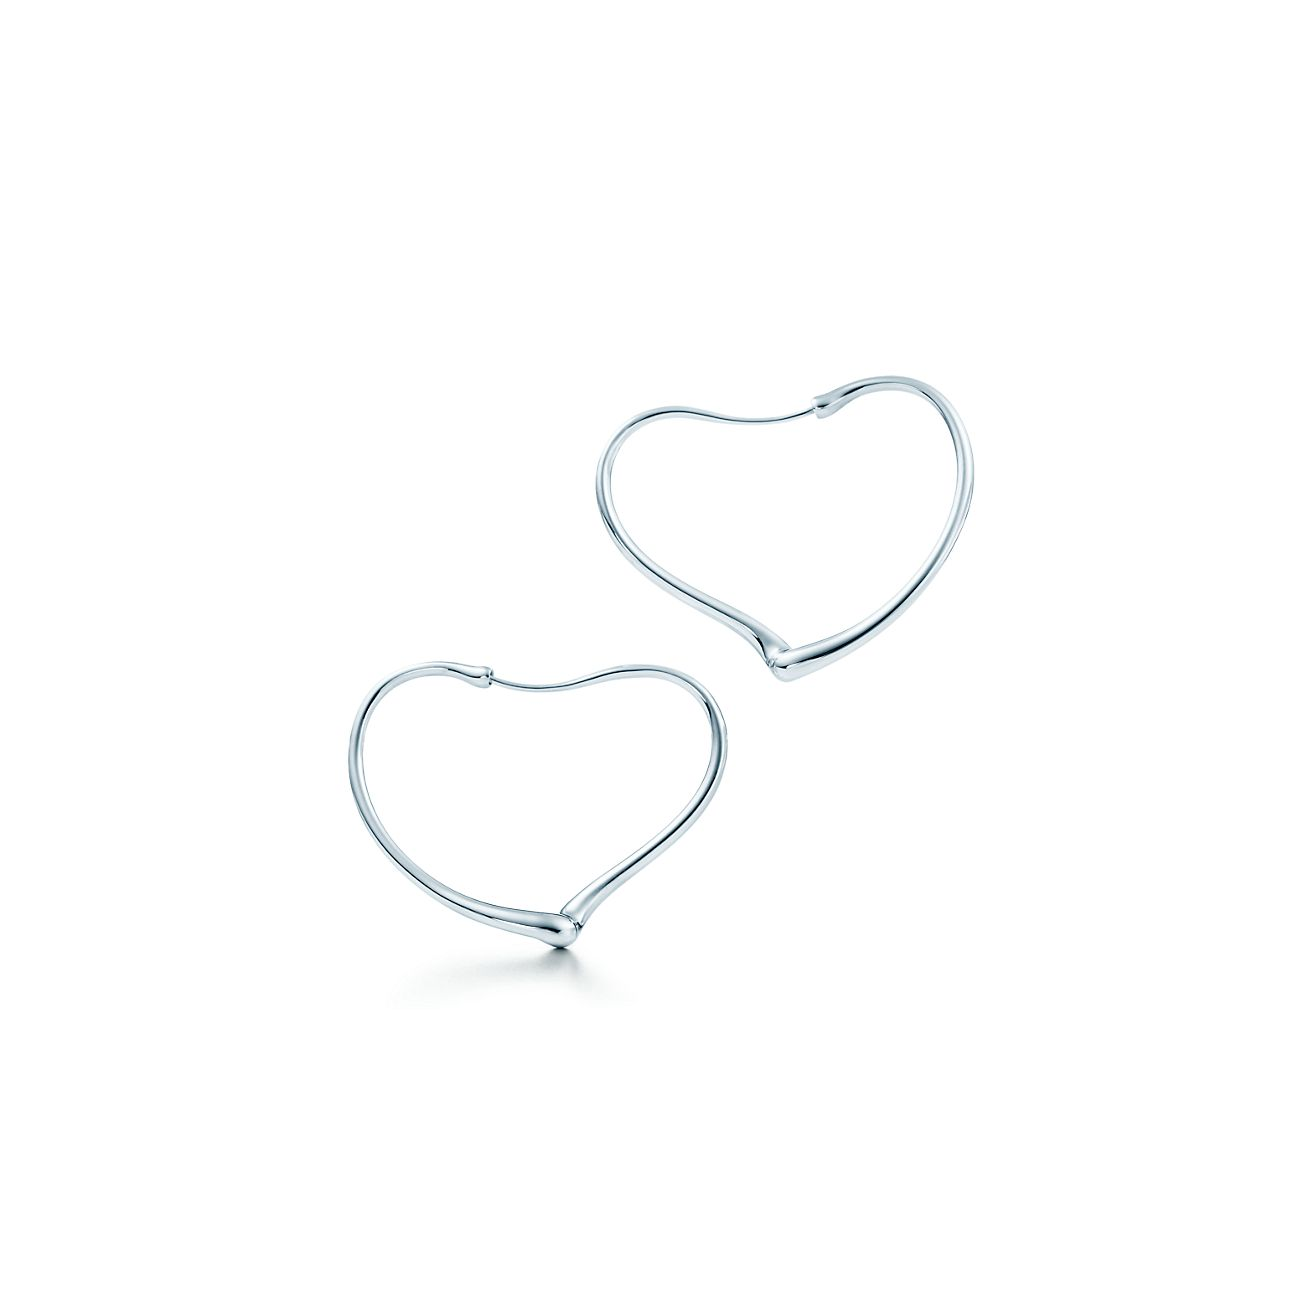 Jewelry Earrings Elsa Peretti Open Heart Hoop Earrings Grp00446 Tiffany Earrings Heart